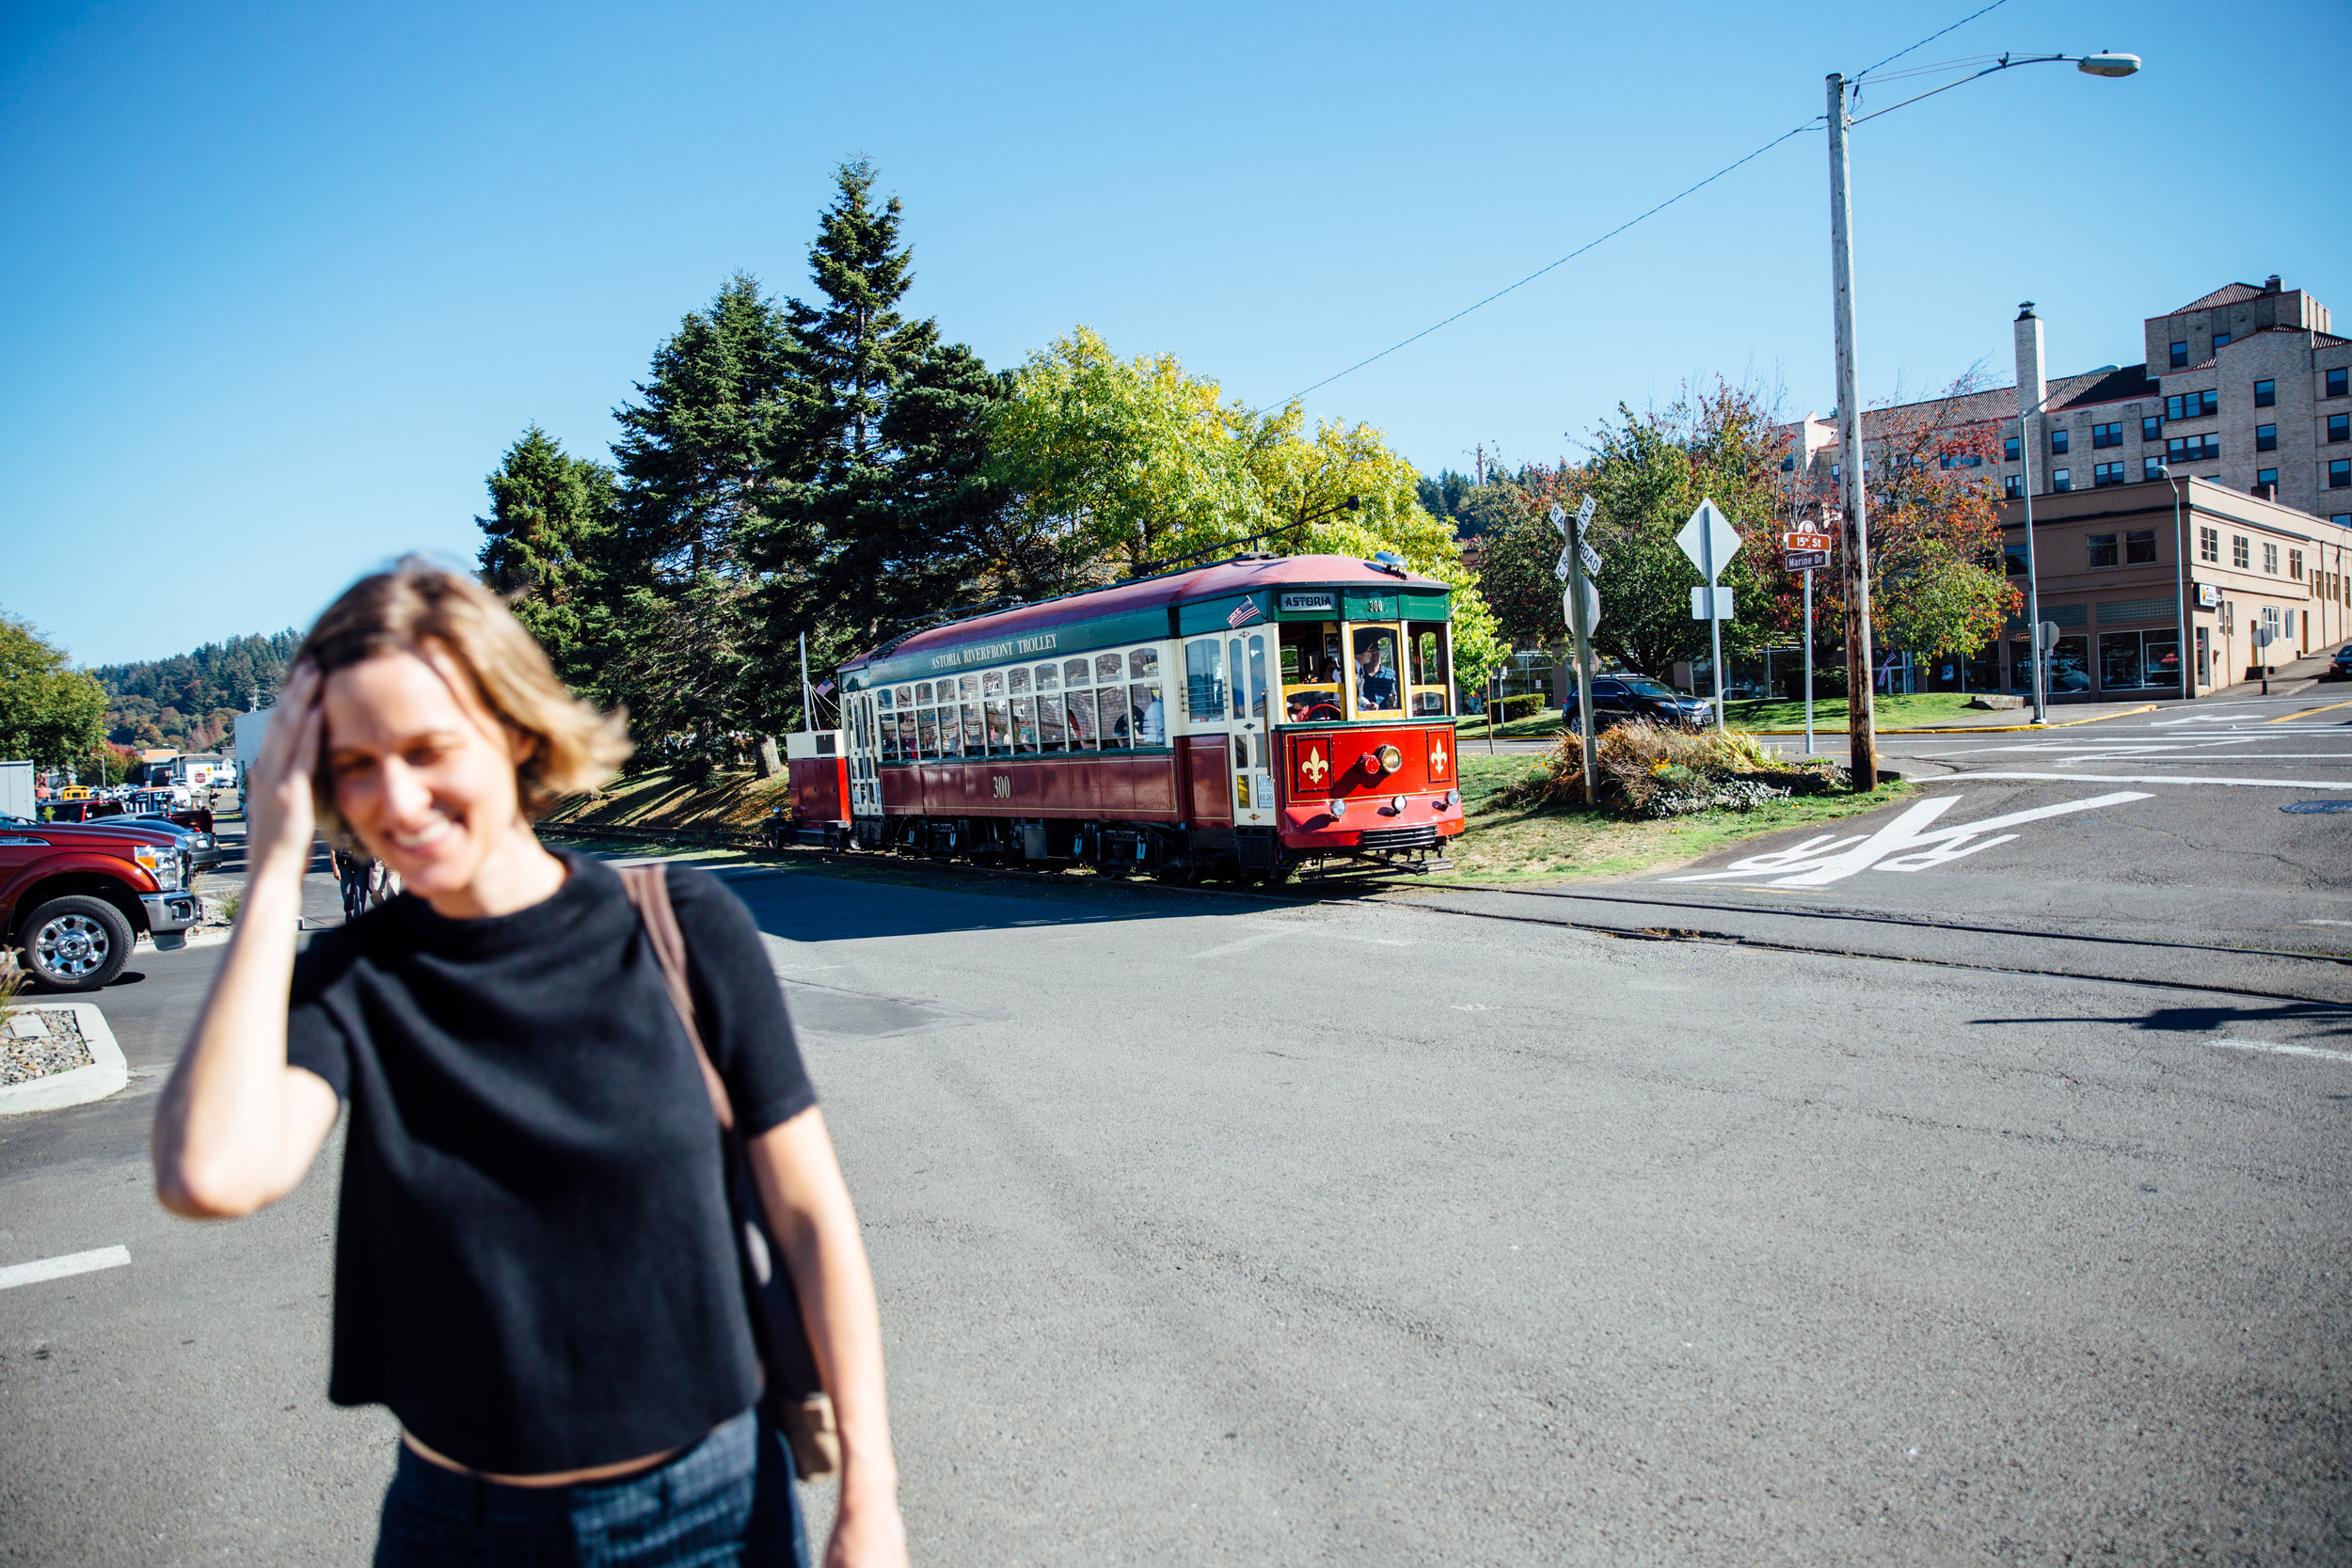 Elaine Schimek in front of the Astoria Riverfront Trolley